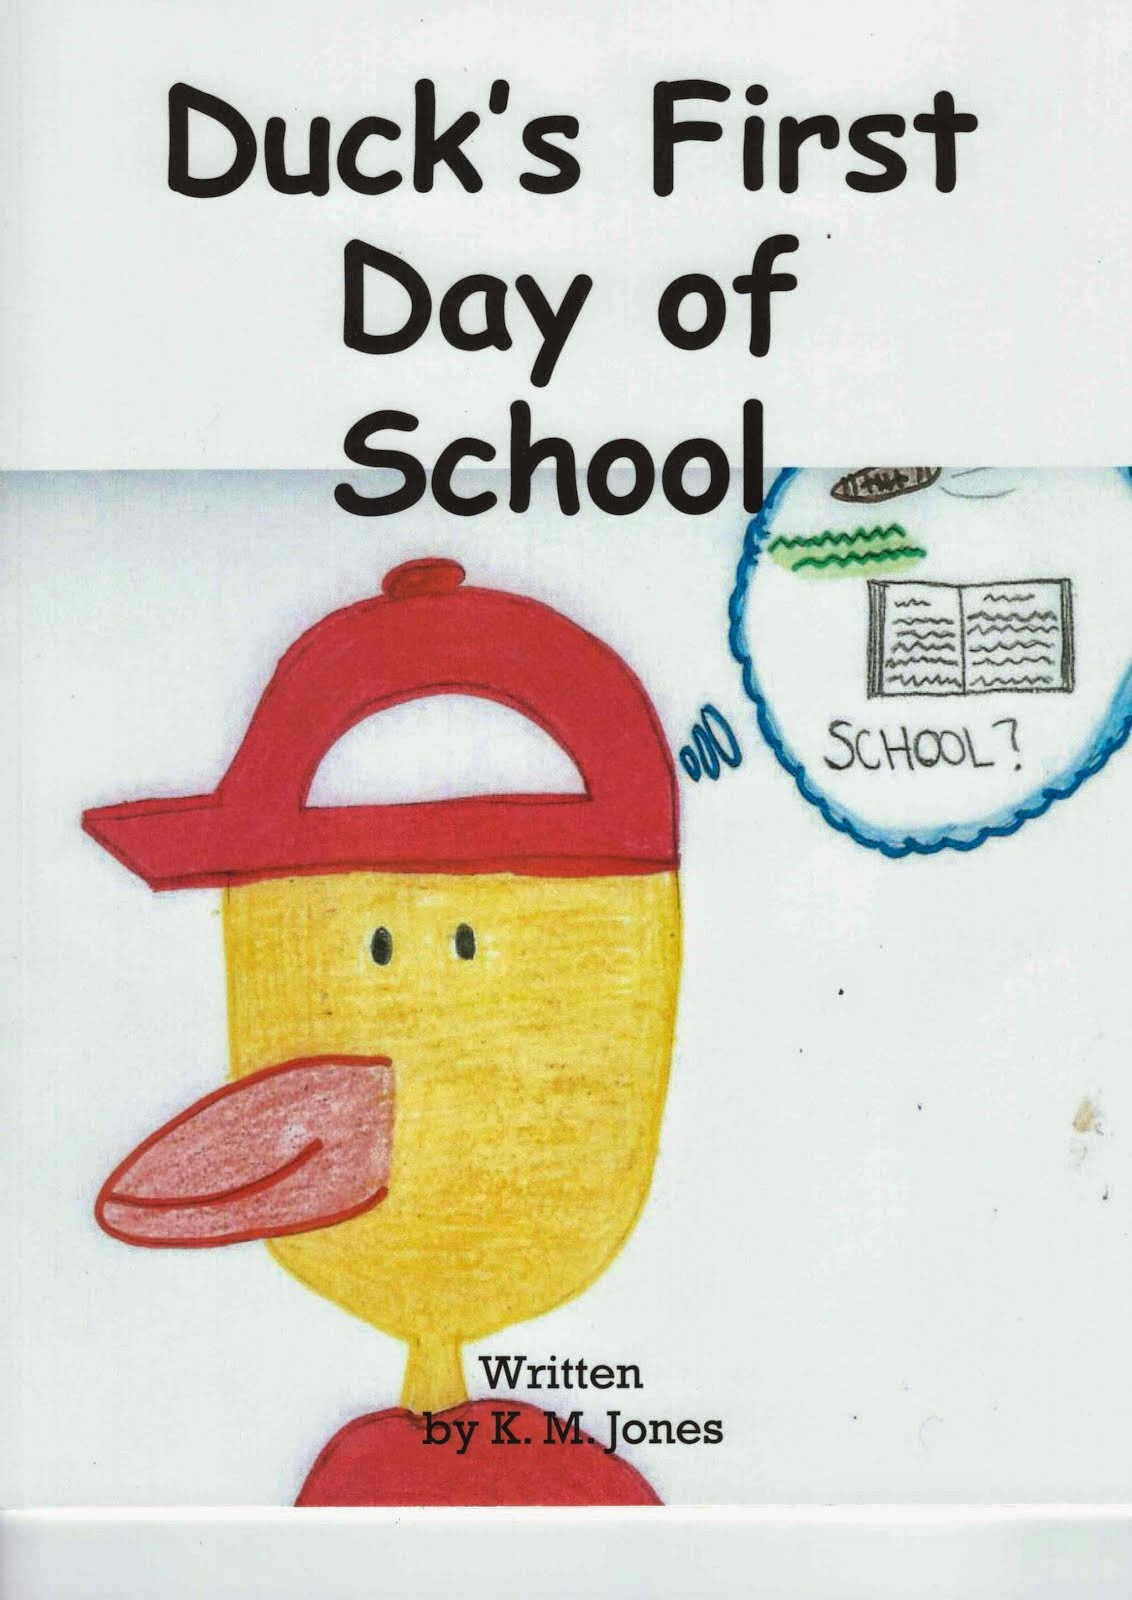 Duck's first day of school